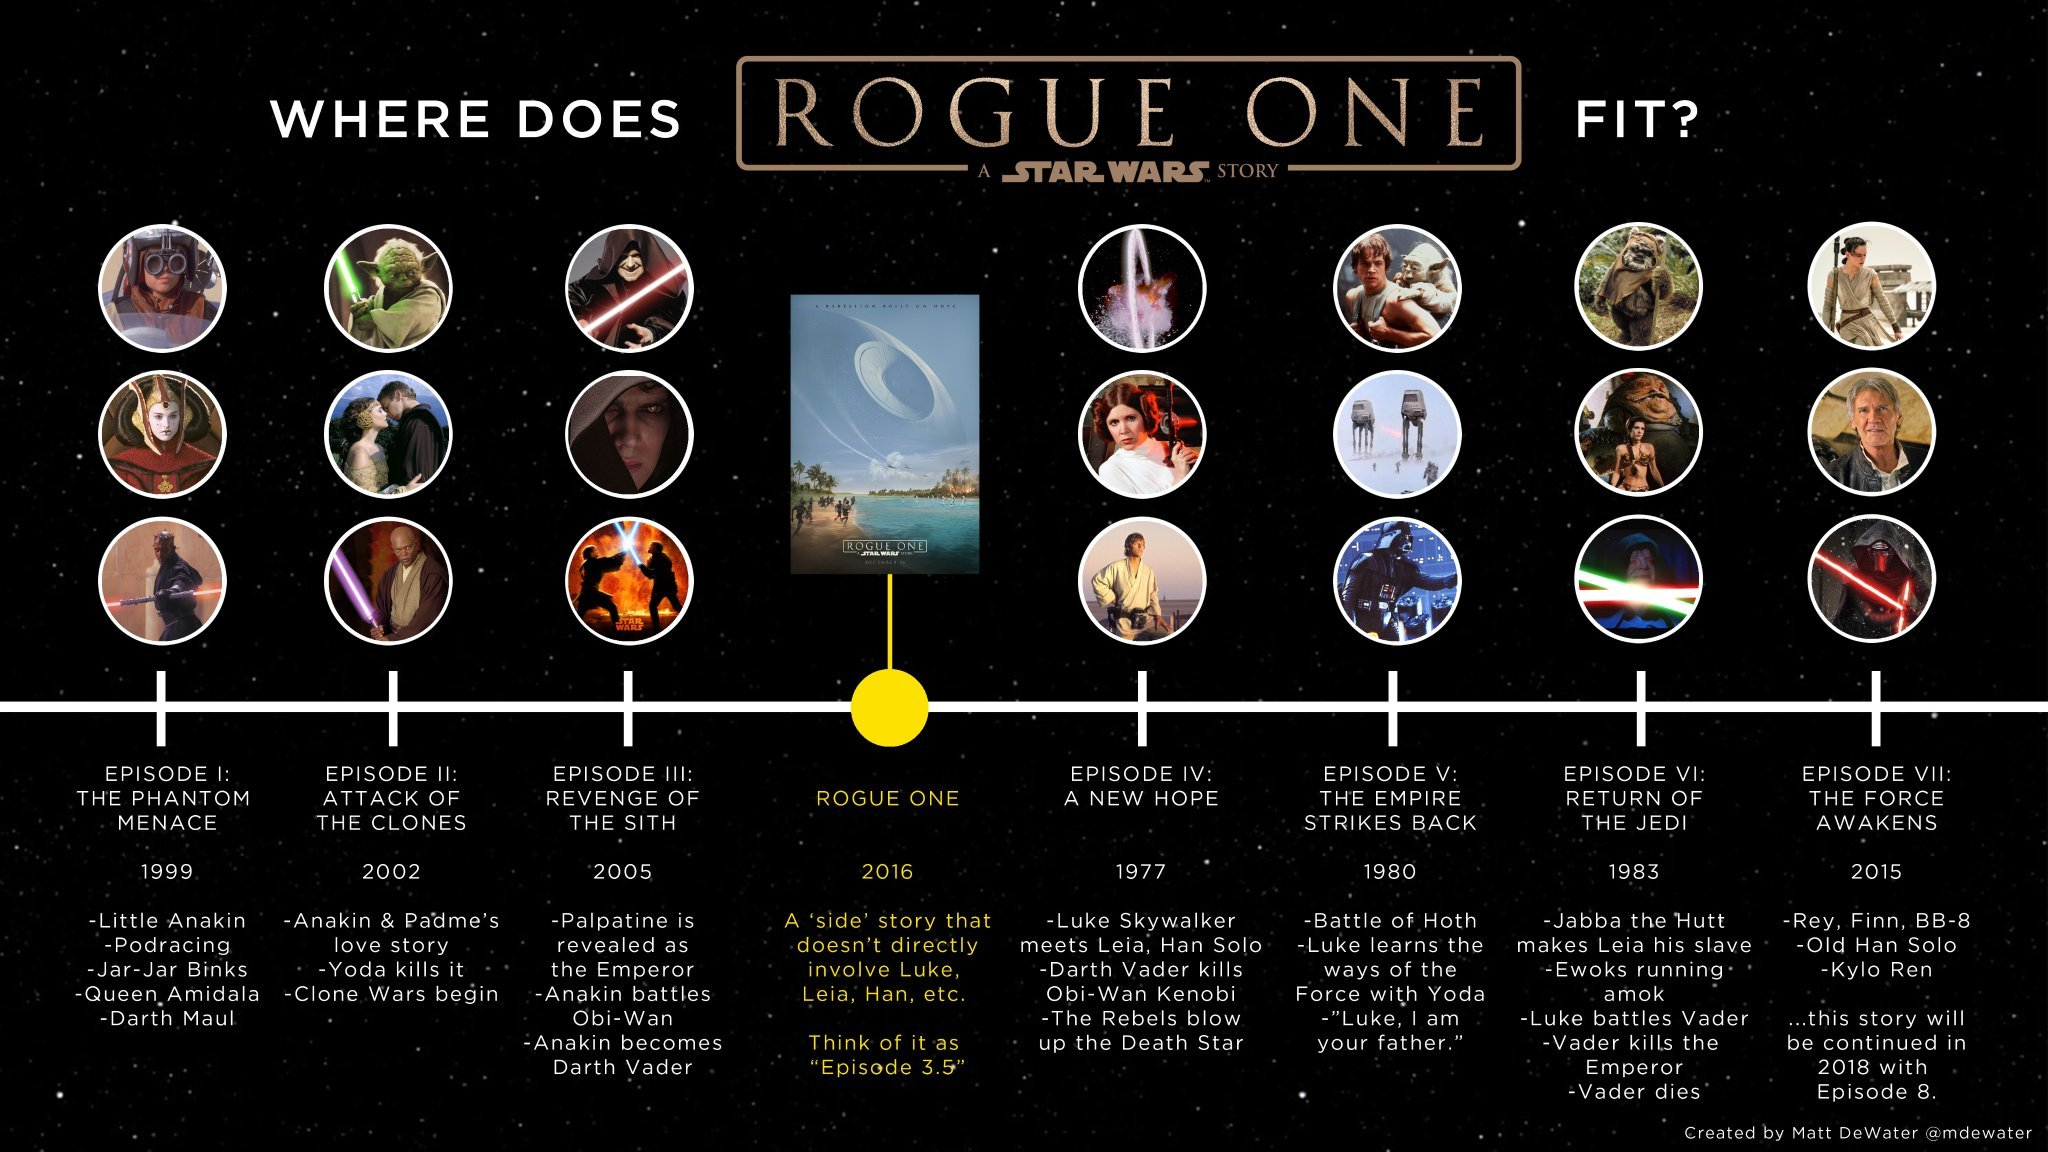 rogue-one-star-wars-timeline